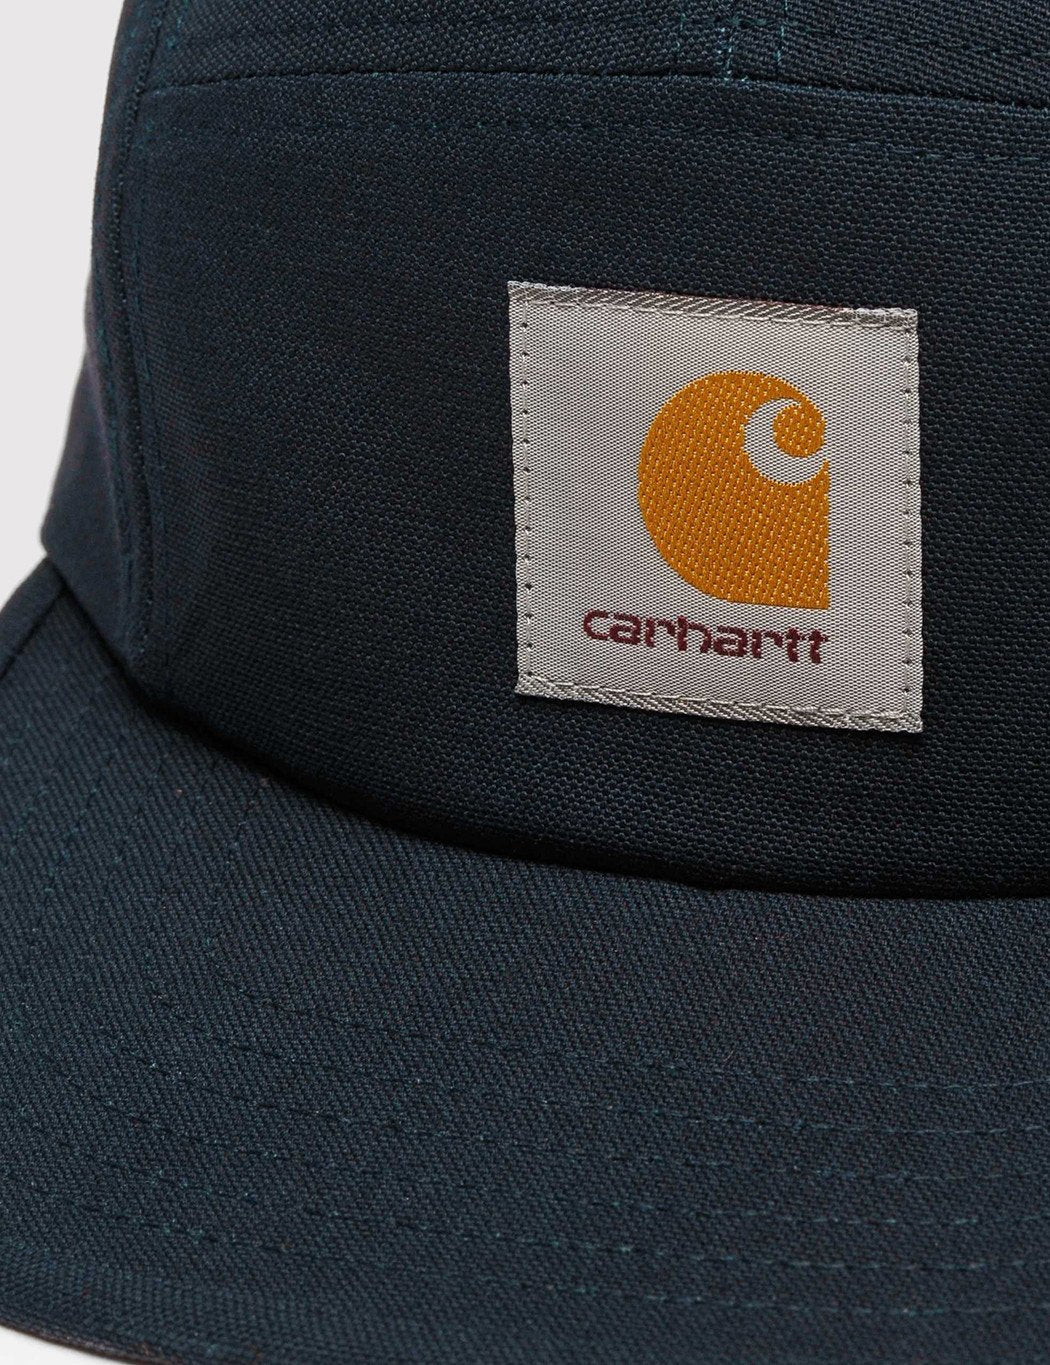 Carhartt Backley 5-Panel Cap - Navy Blue